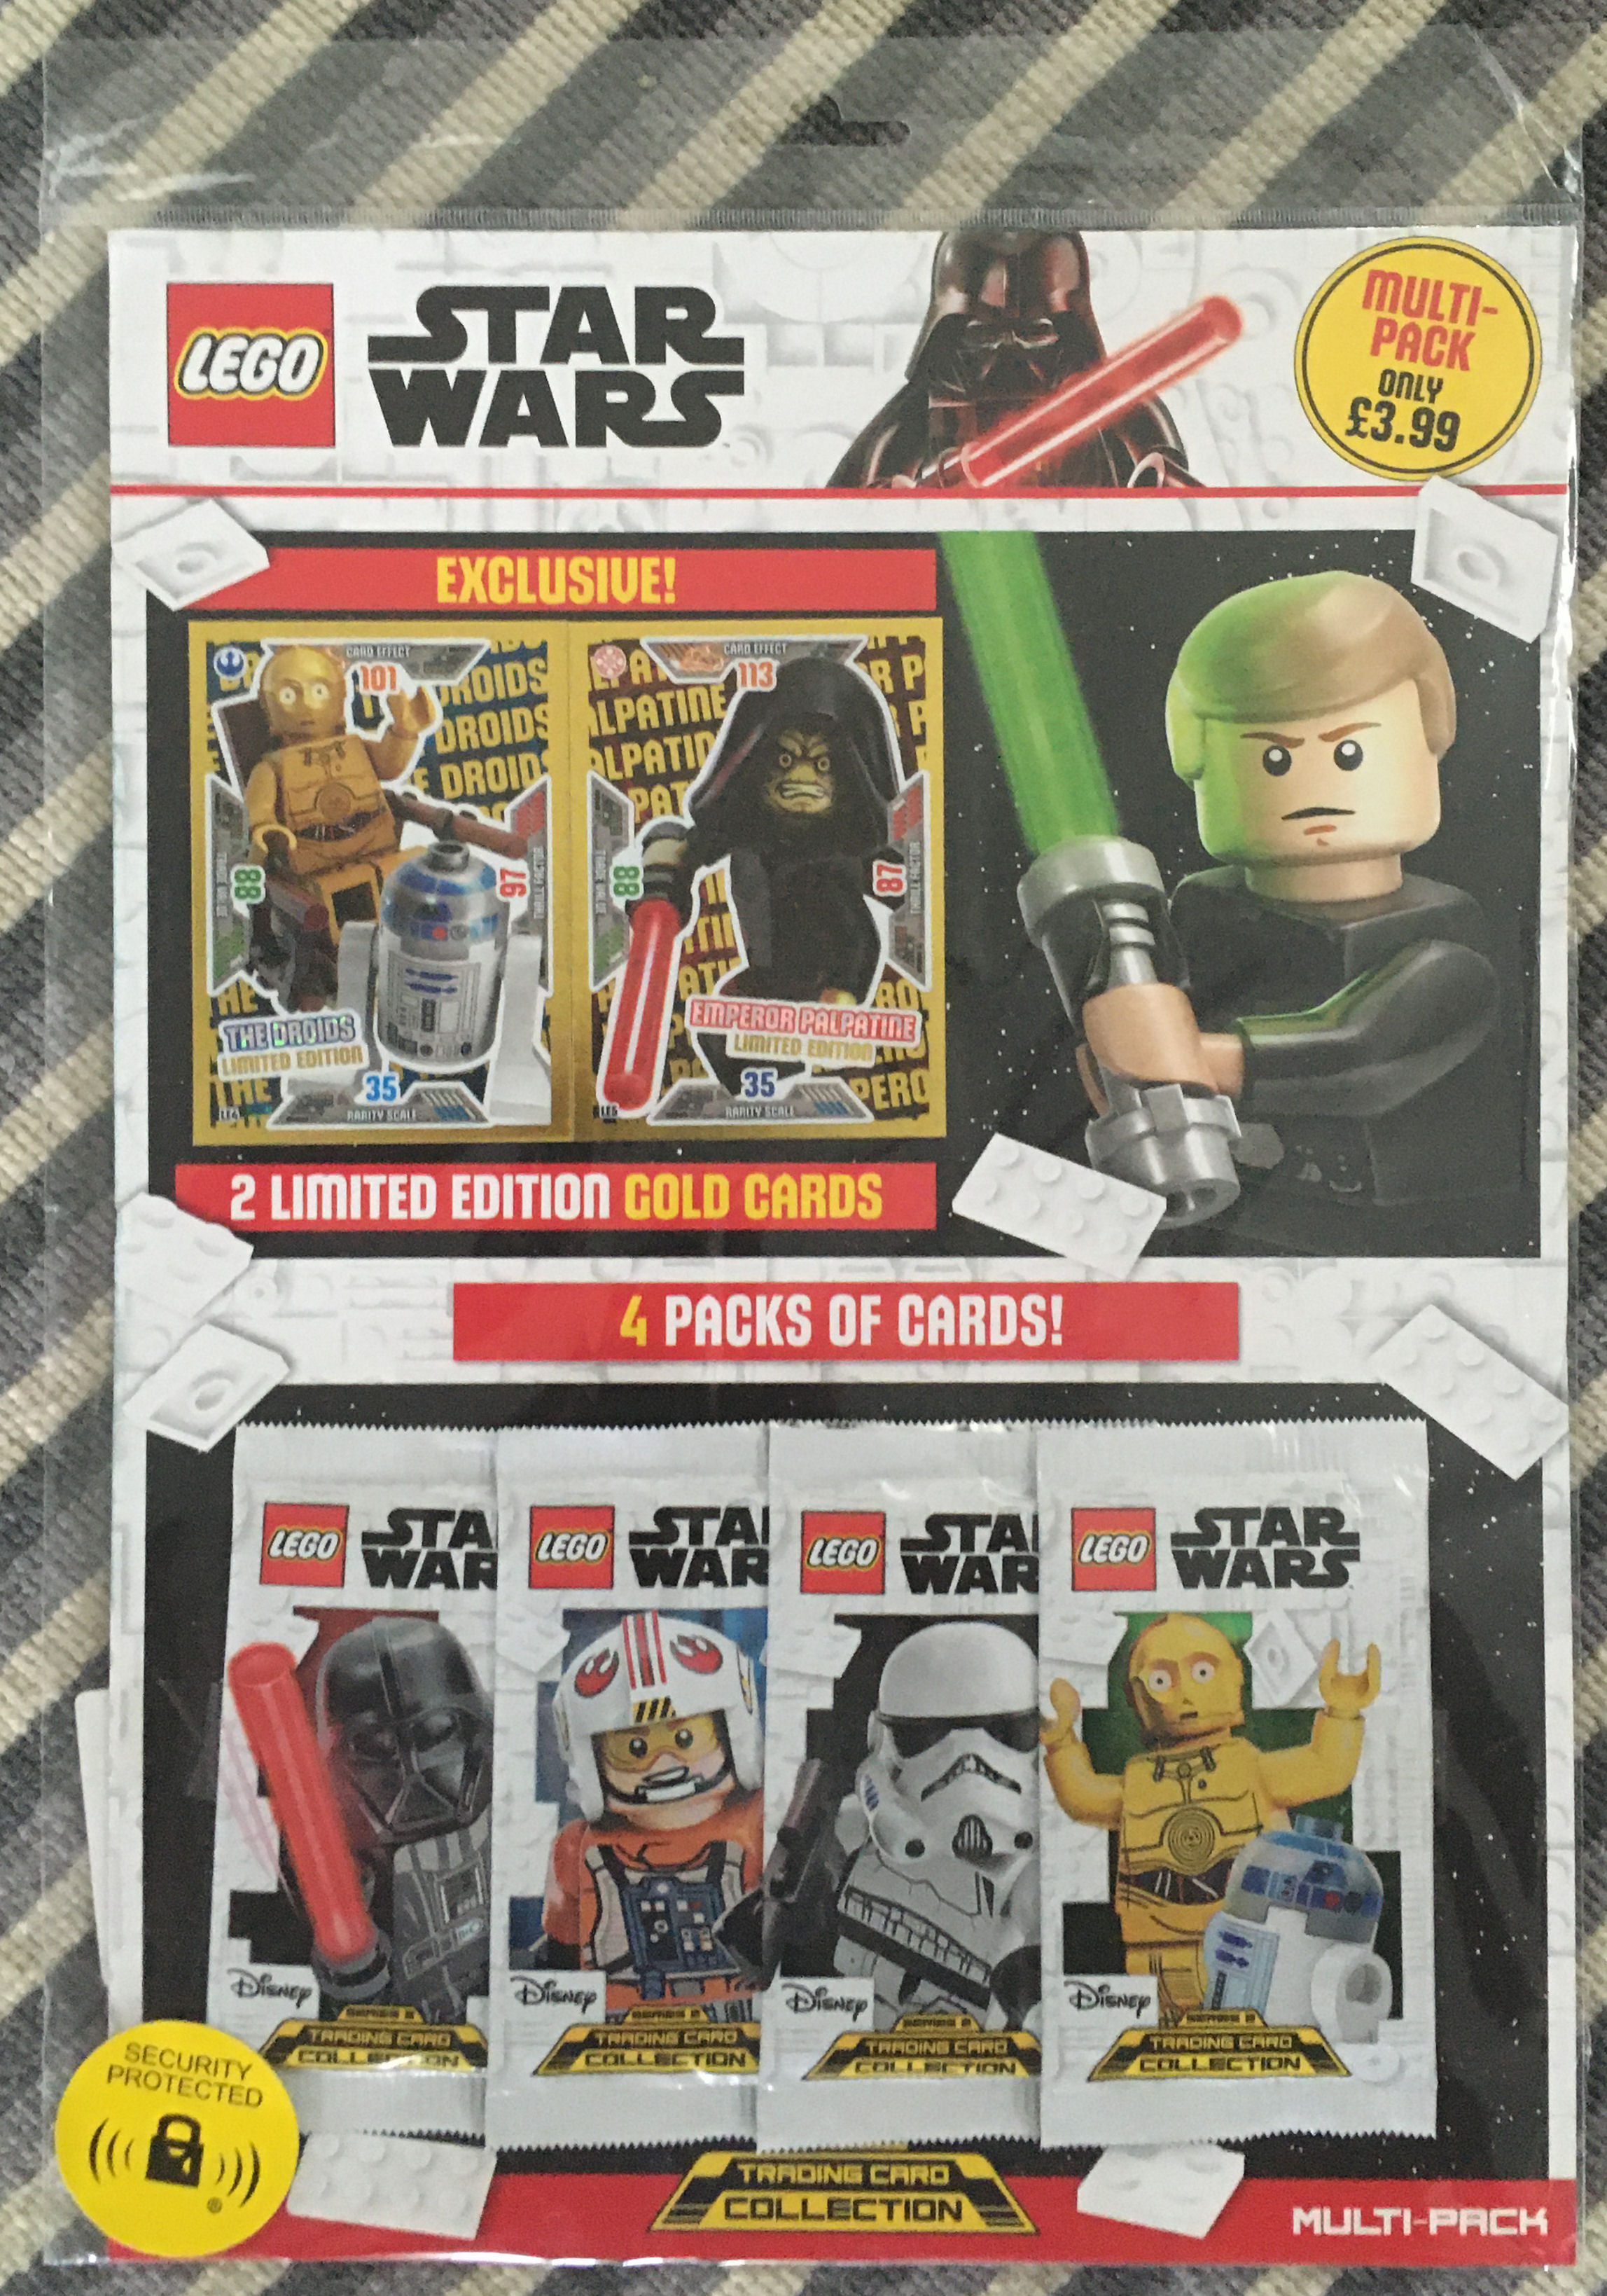 Lego Star Wars Trading Card Collection Série 2 Nº 86 méchant chef snoke